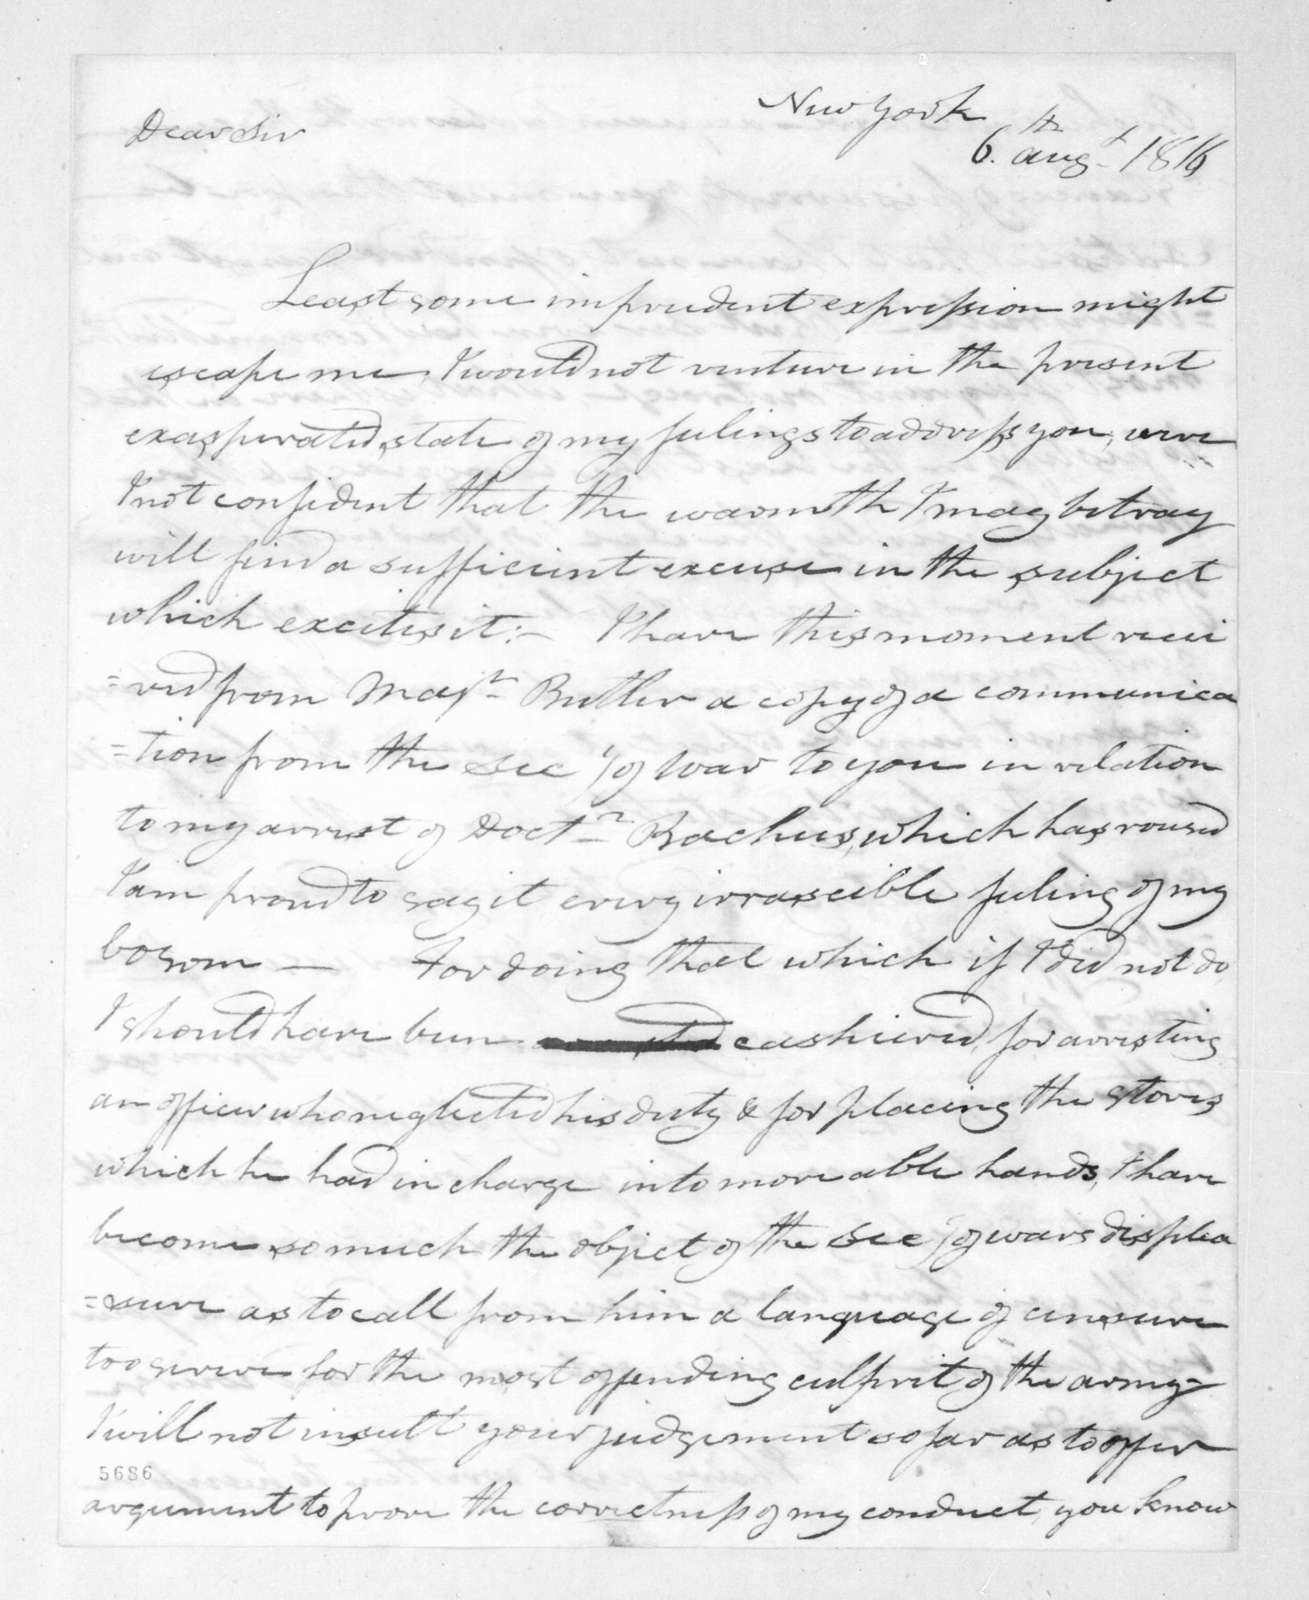 George Croghan to Andrew Jackson, August 6, 1816